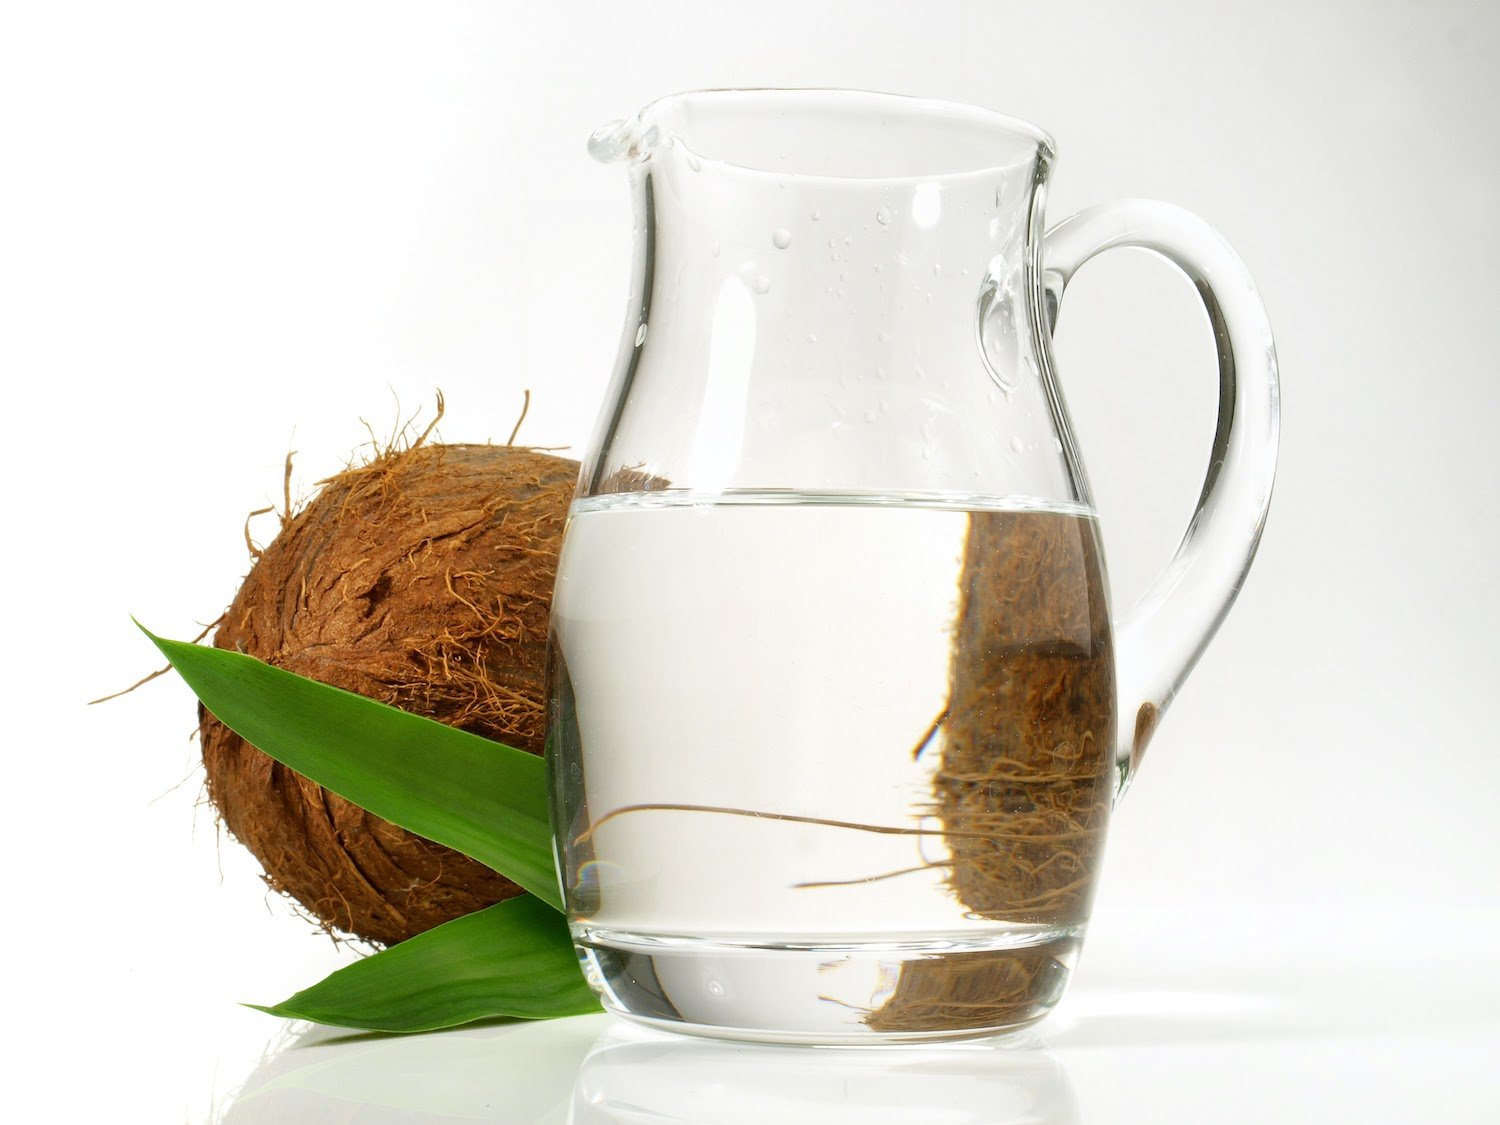 MCT oil vs coconut oil: A pitcher of coconut oil with a coconut in the background